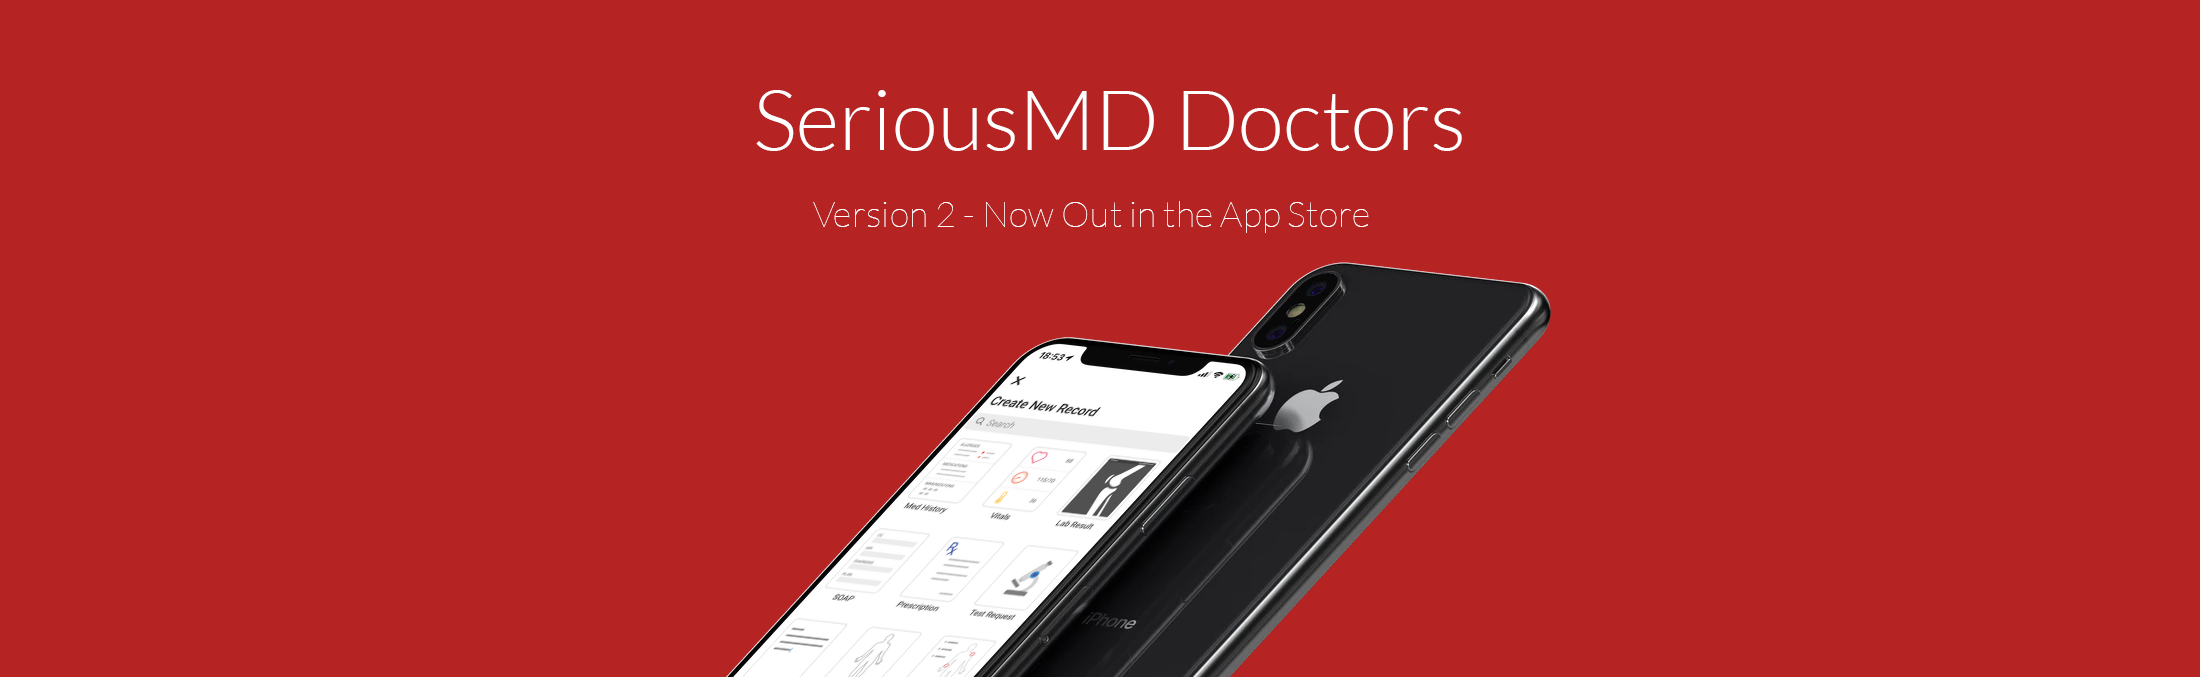 SeriousMD Doctors Version 2